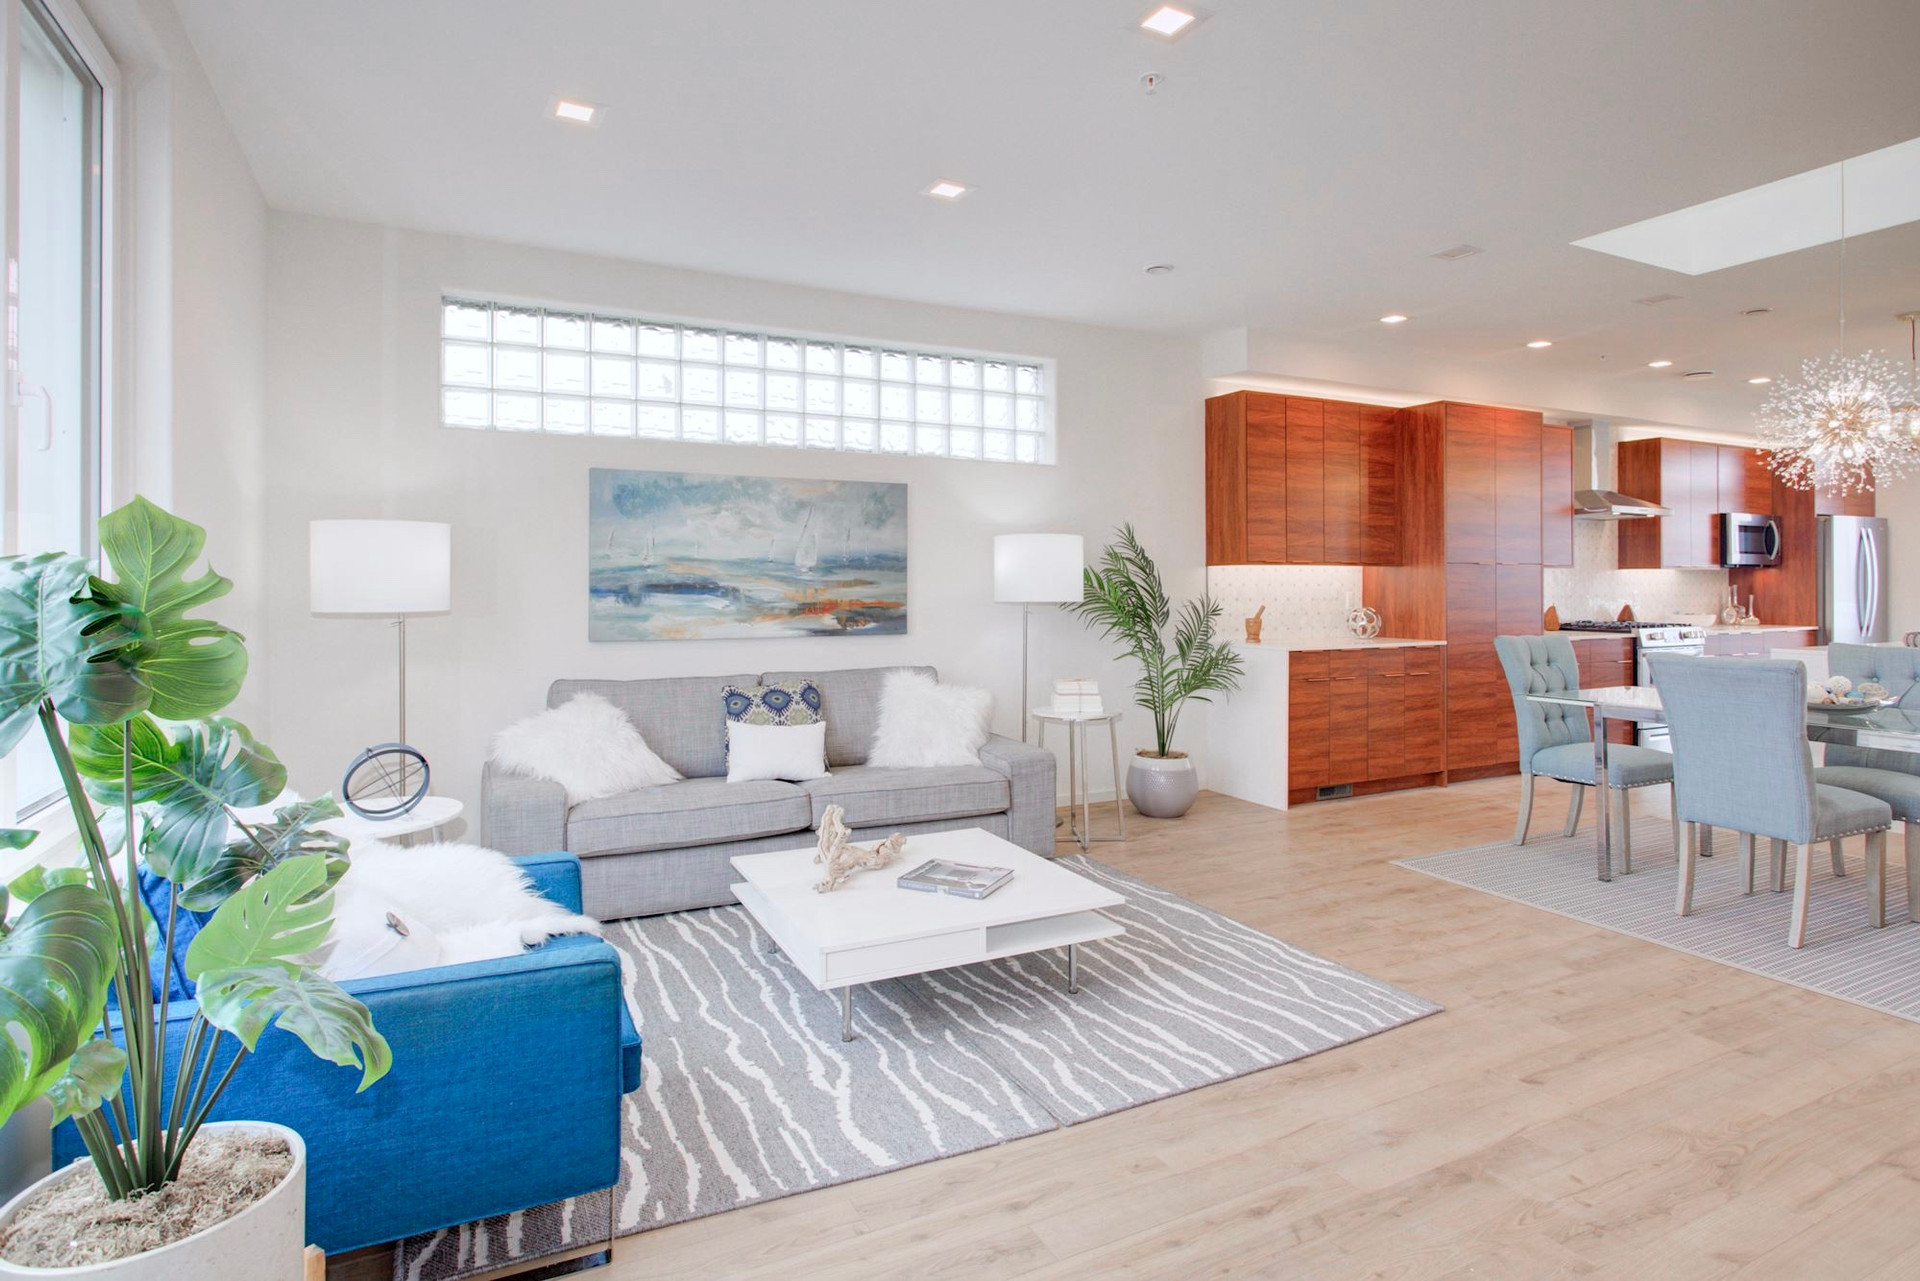 Super bright penthouse living areas with 9' windows and skylight